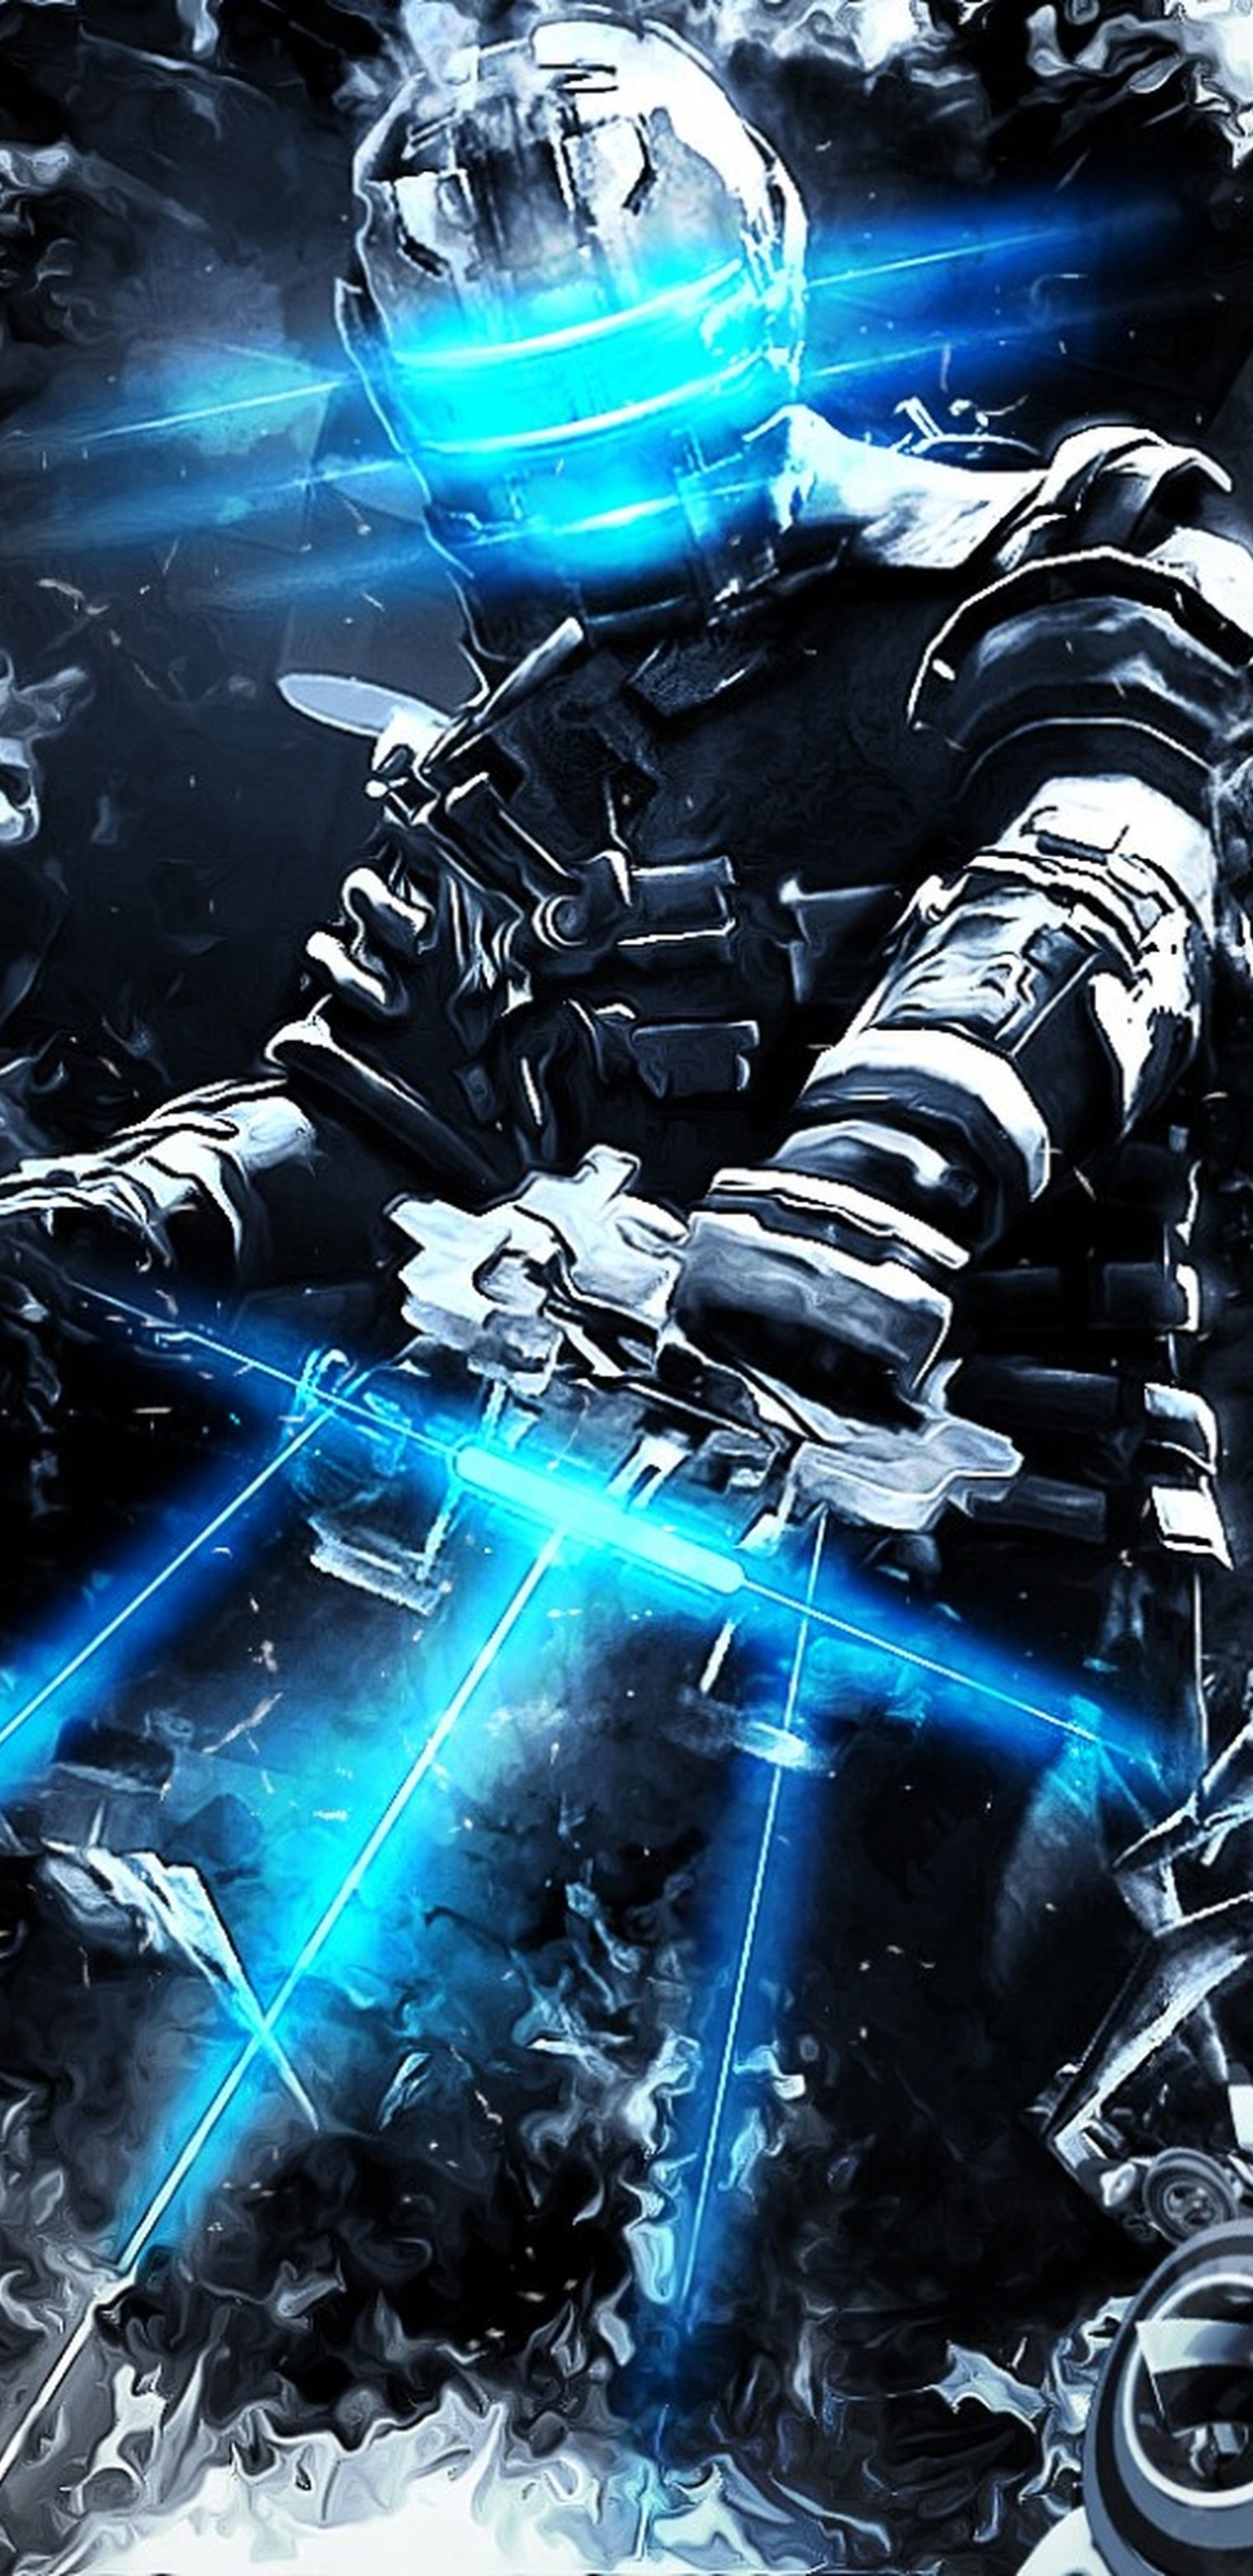 Video Game Dead Space 3 1440x2960 Wallpaper Id 709714 Mobile Abyss